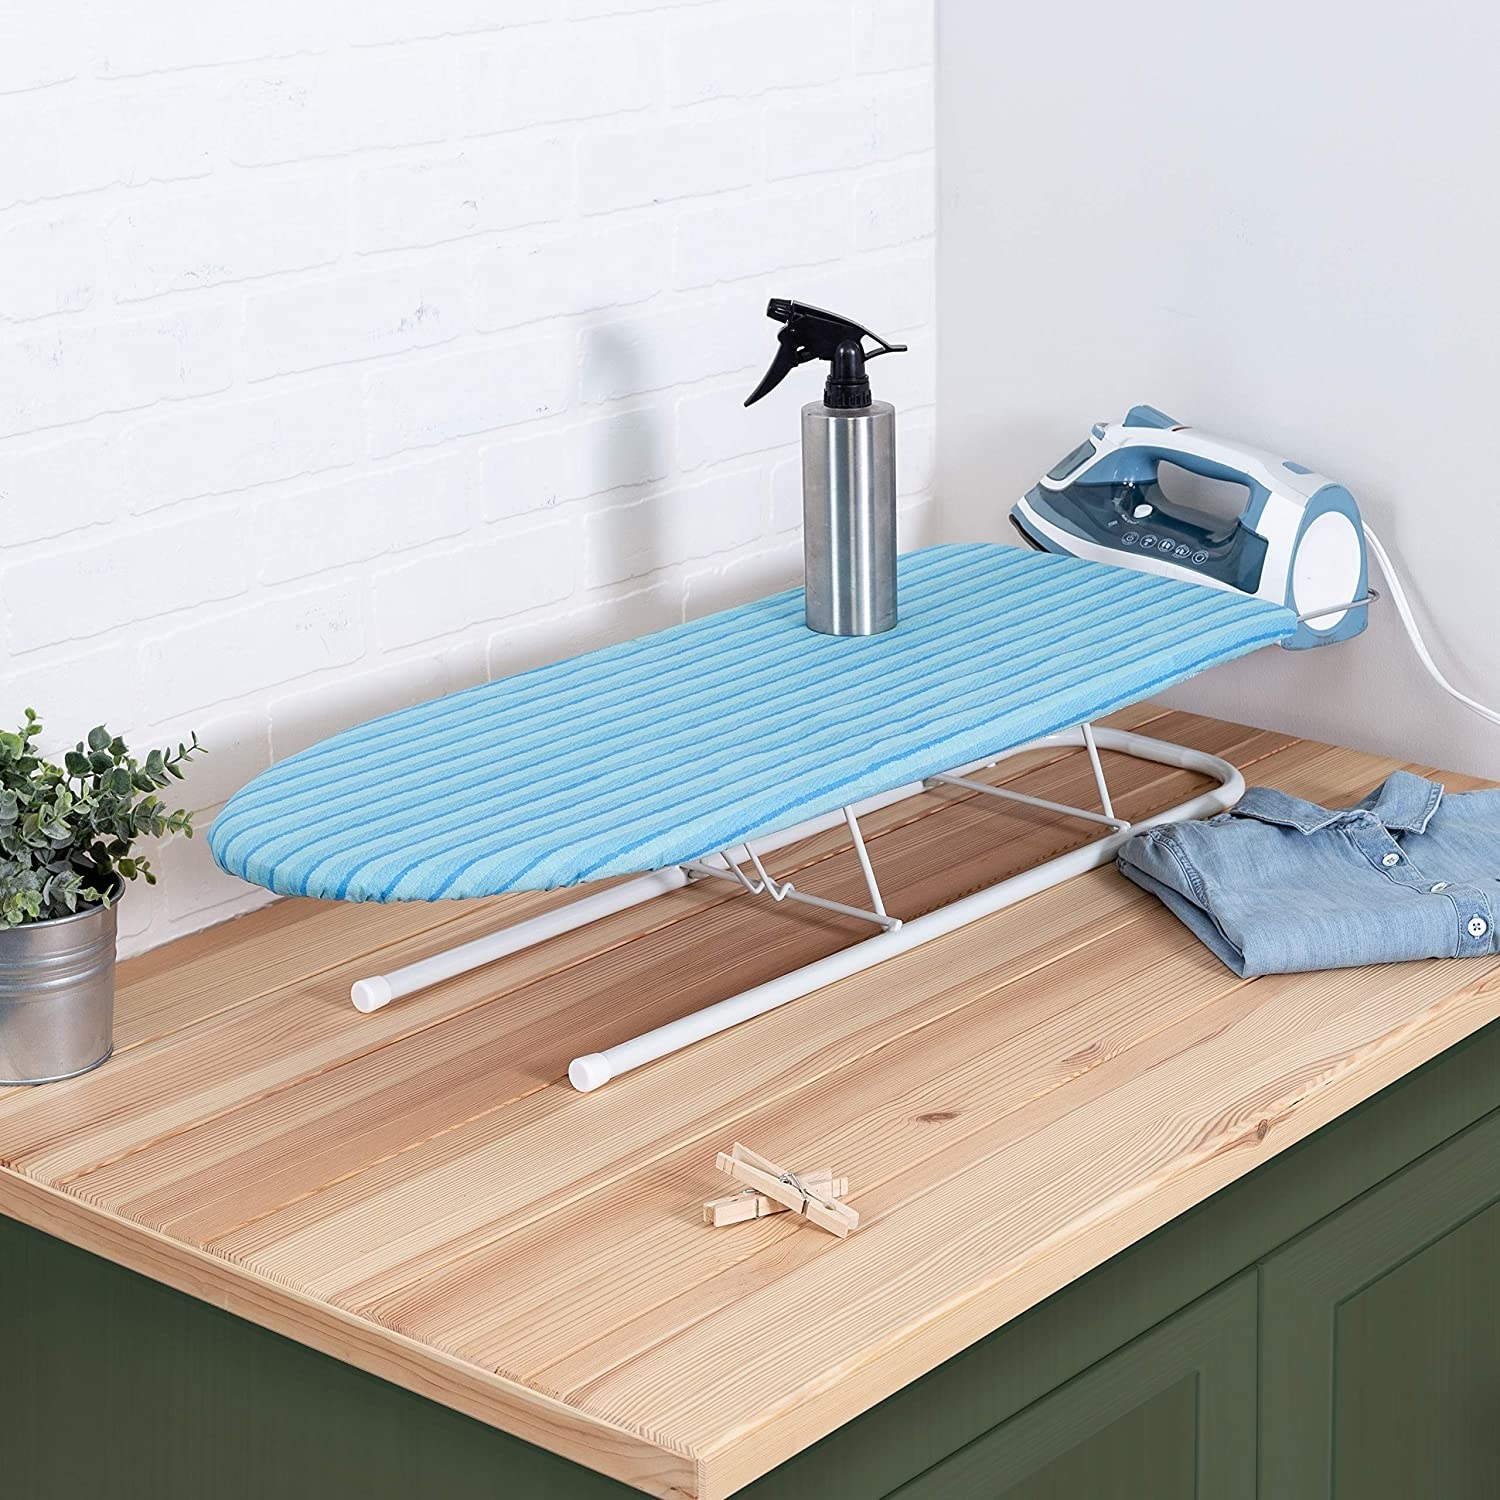 The ironing board on a countertop with a spray bottle on top of it